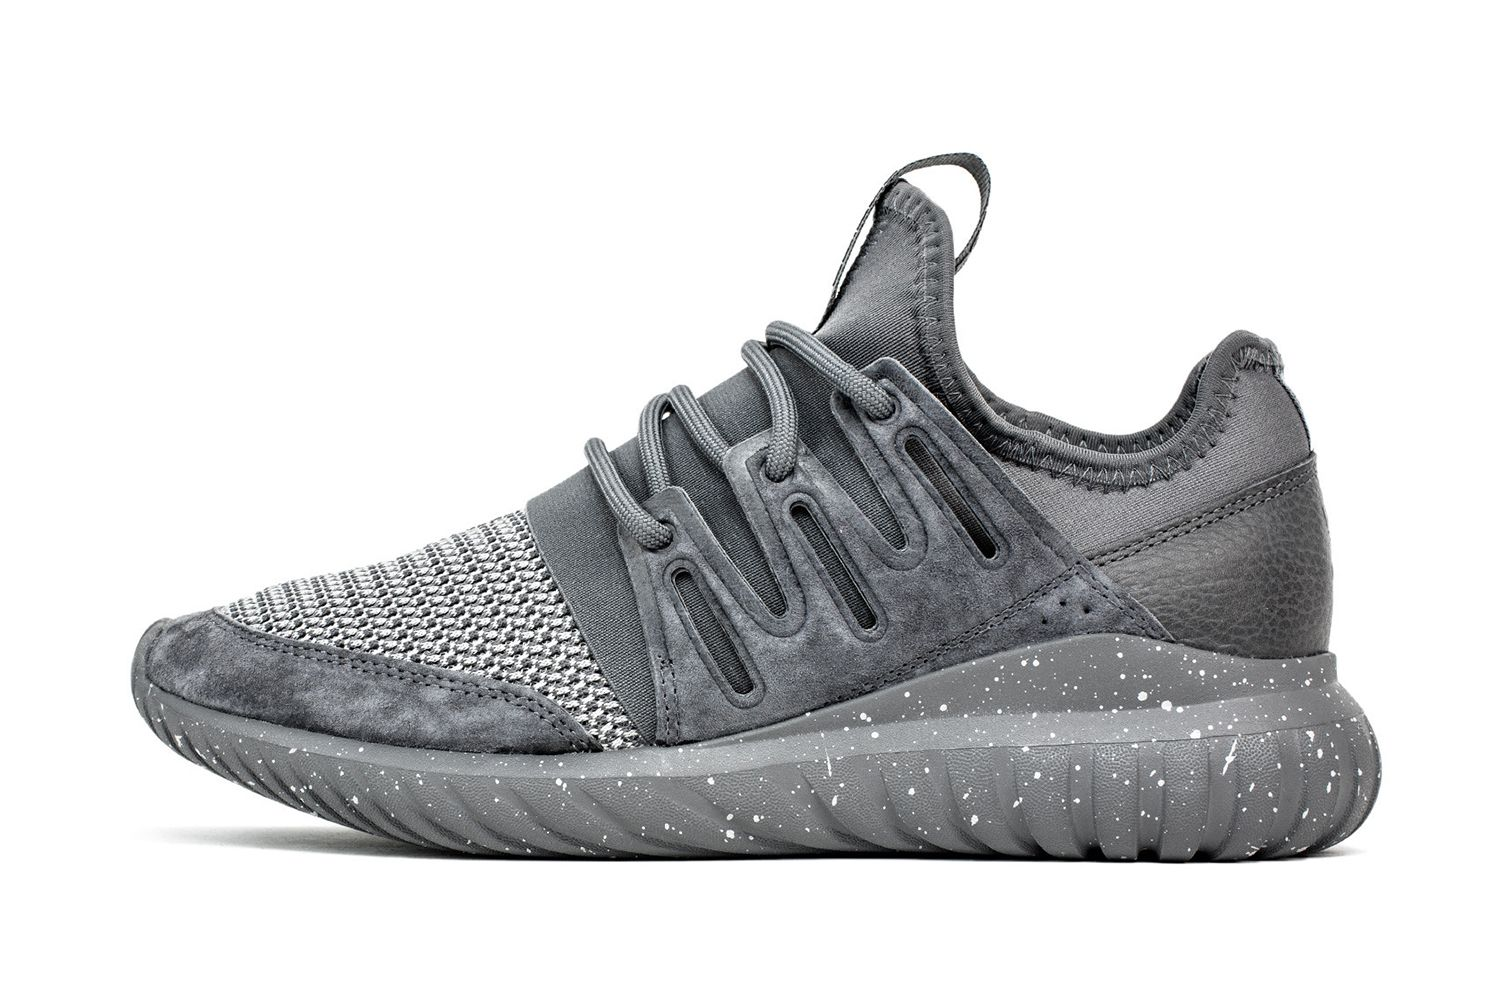 best website 7681d 7c633 Adidas Tubular Radial Low